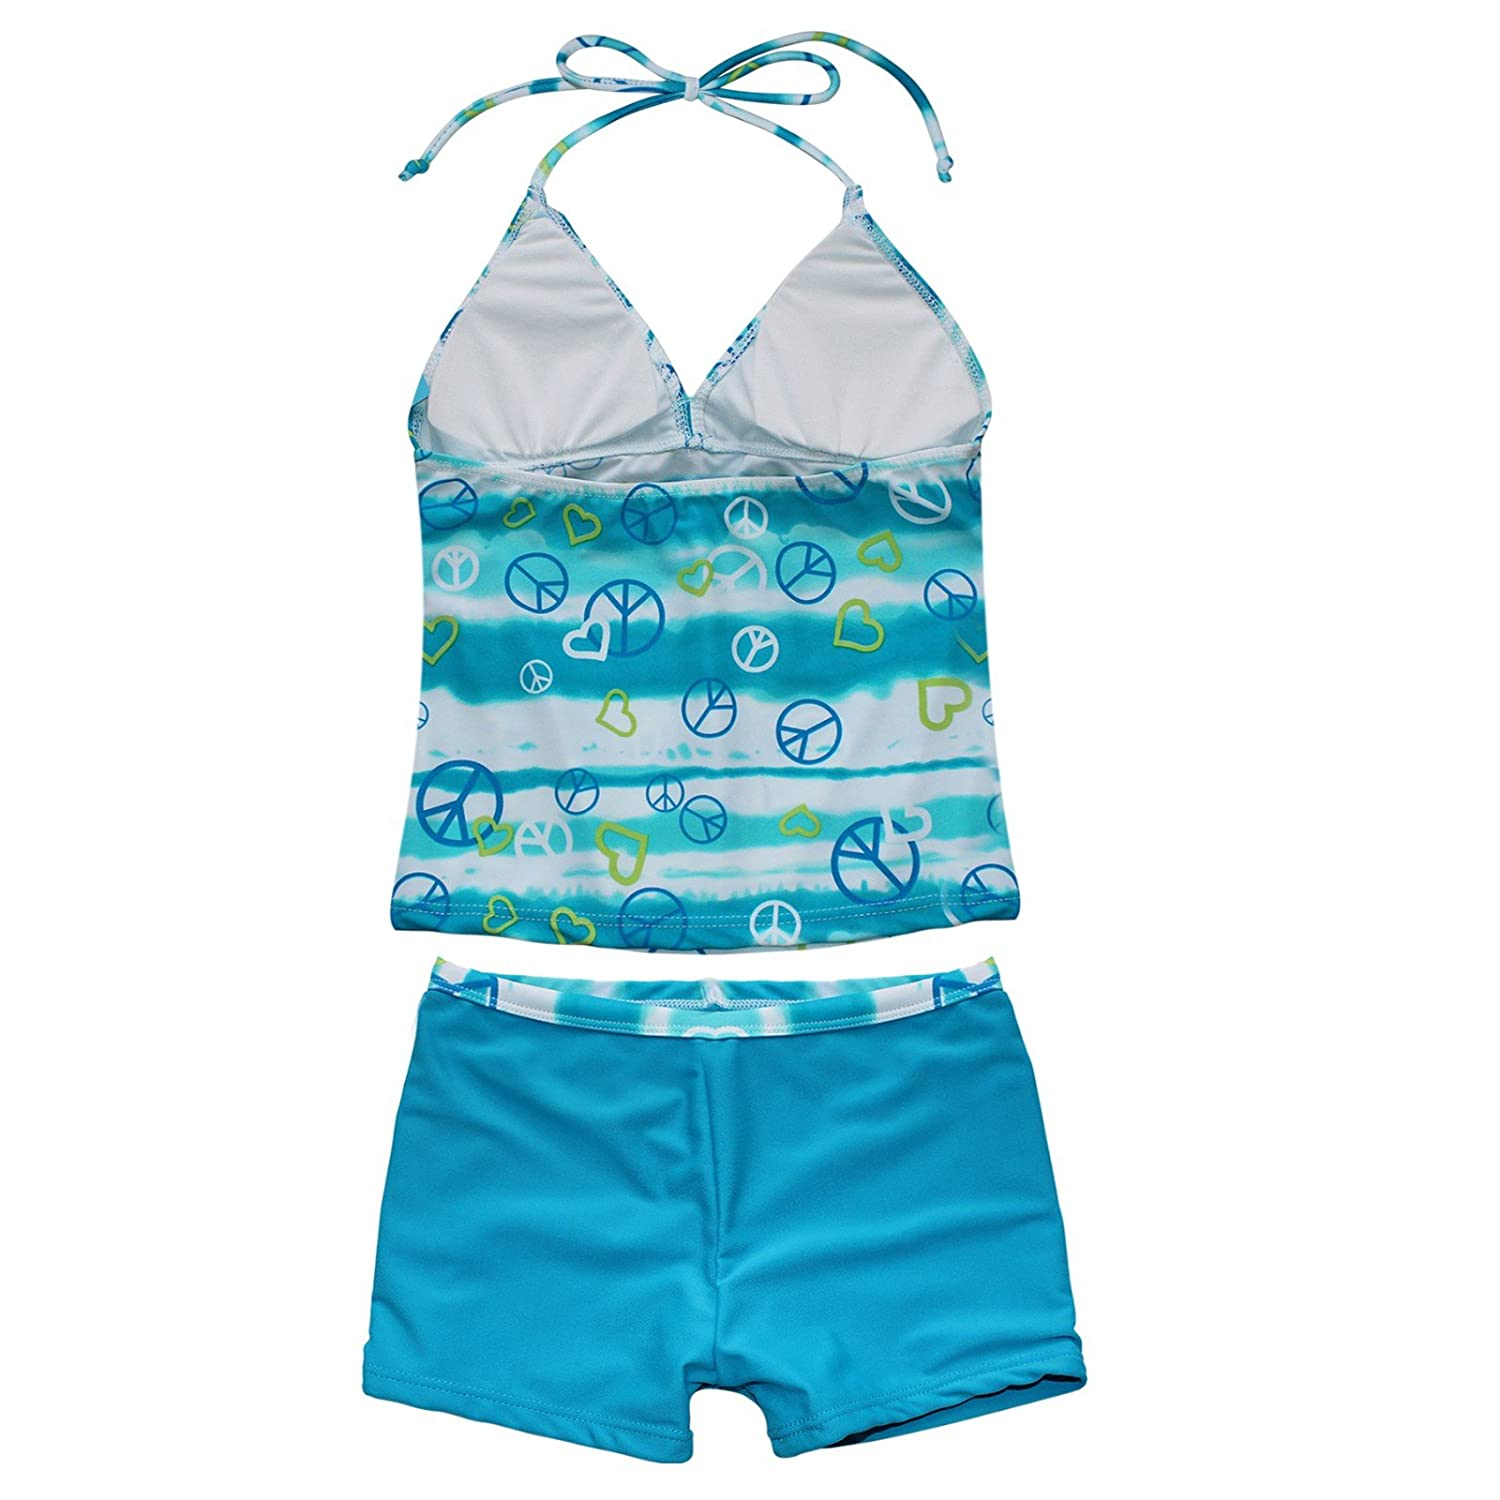 ranrann Girls 2PCS Tankini Halter Neck Front Bowknot Tops with Bottoms Outfits Swimwear Bathing Suit